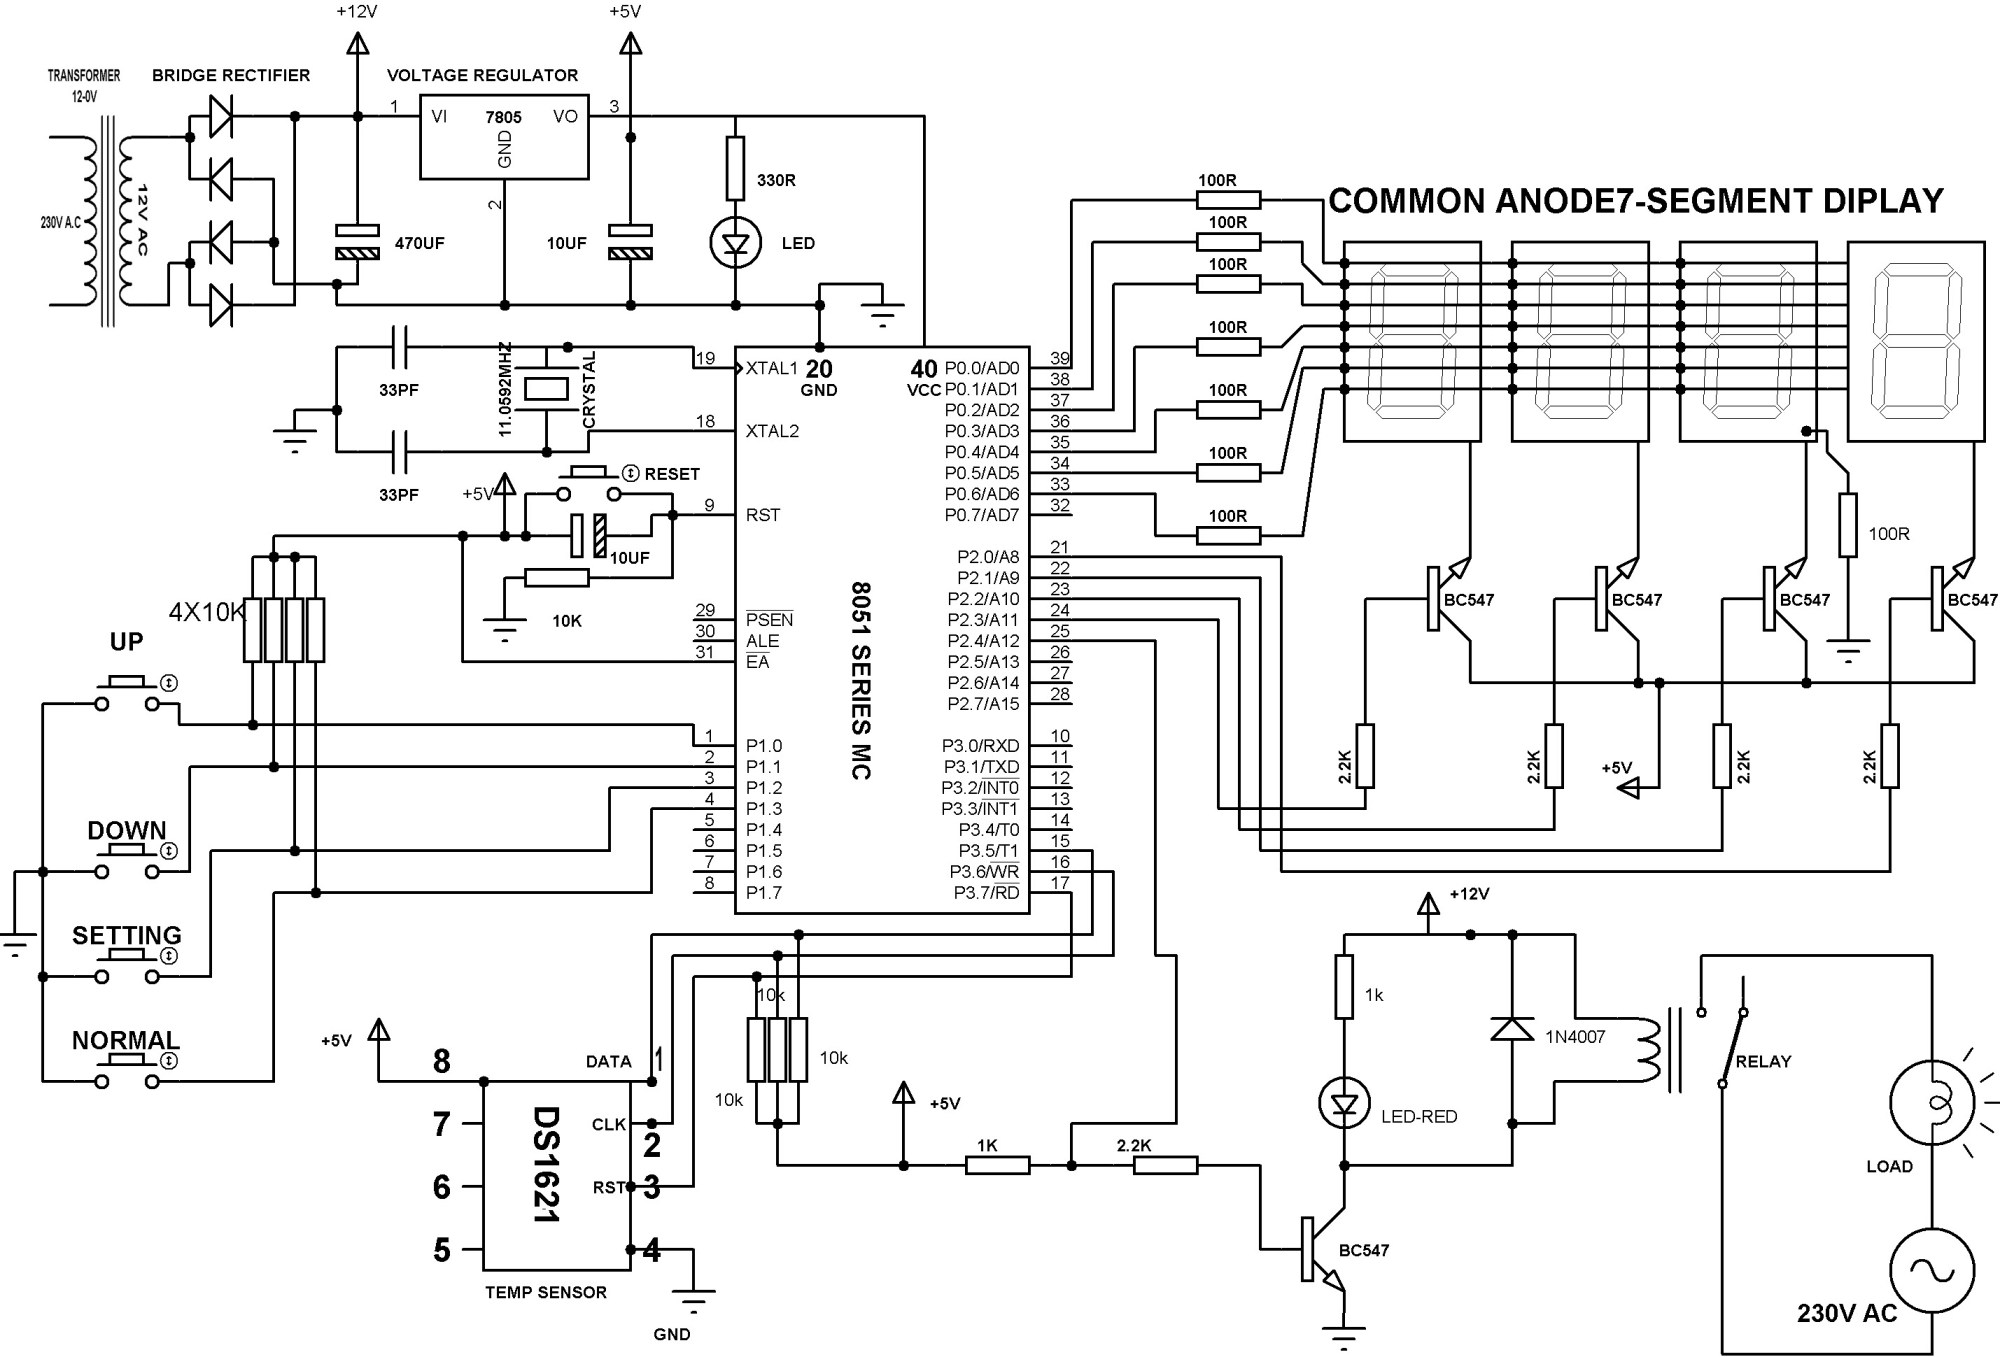 hight resolution of circuit diagram interface application download controller circuit circuit diagram interface application download controller circuit